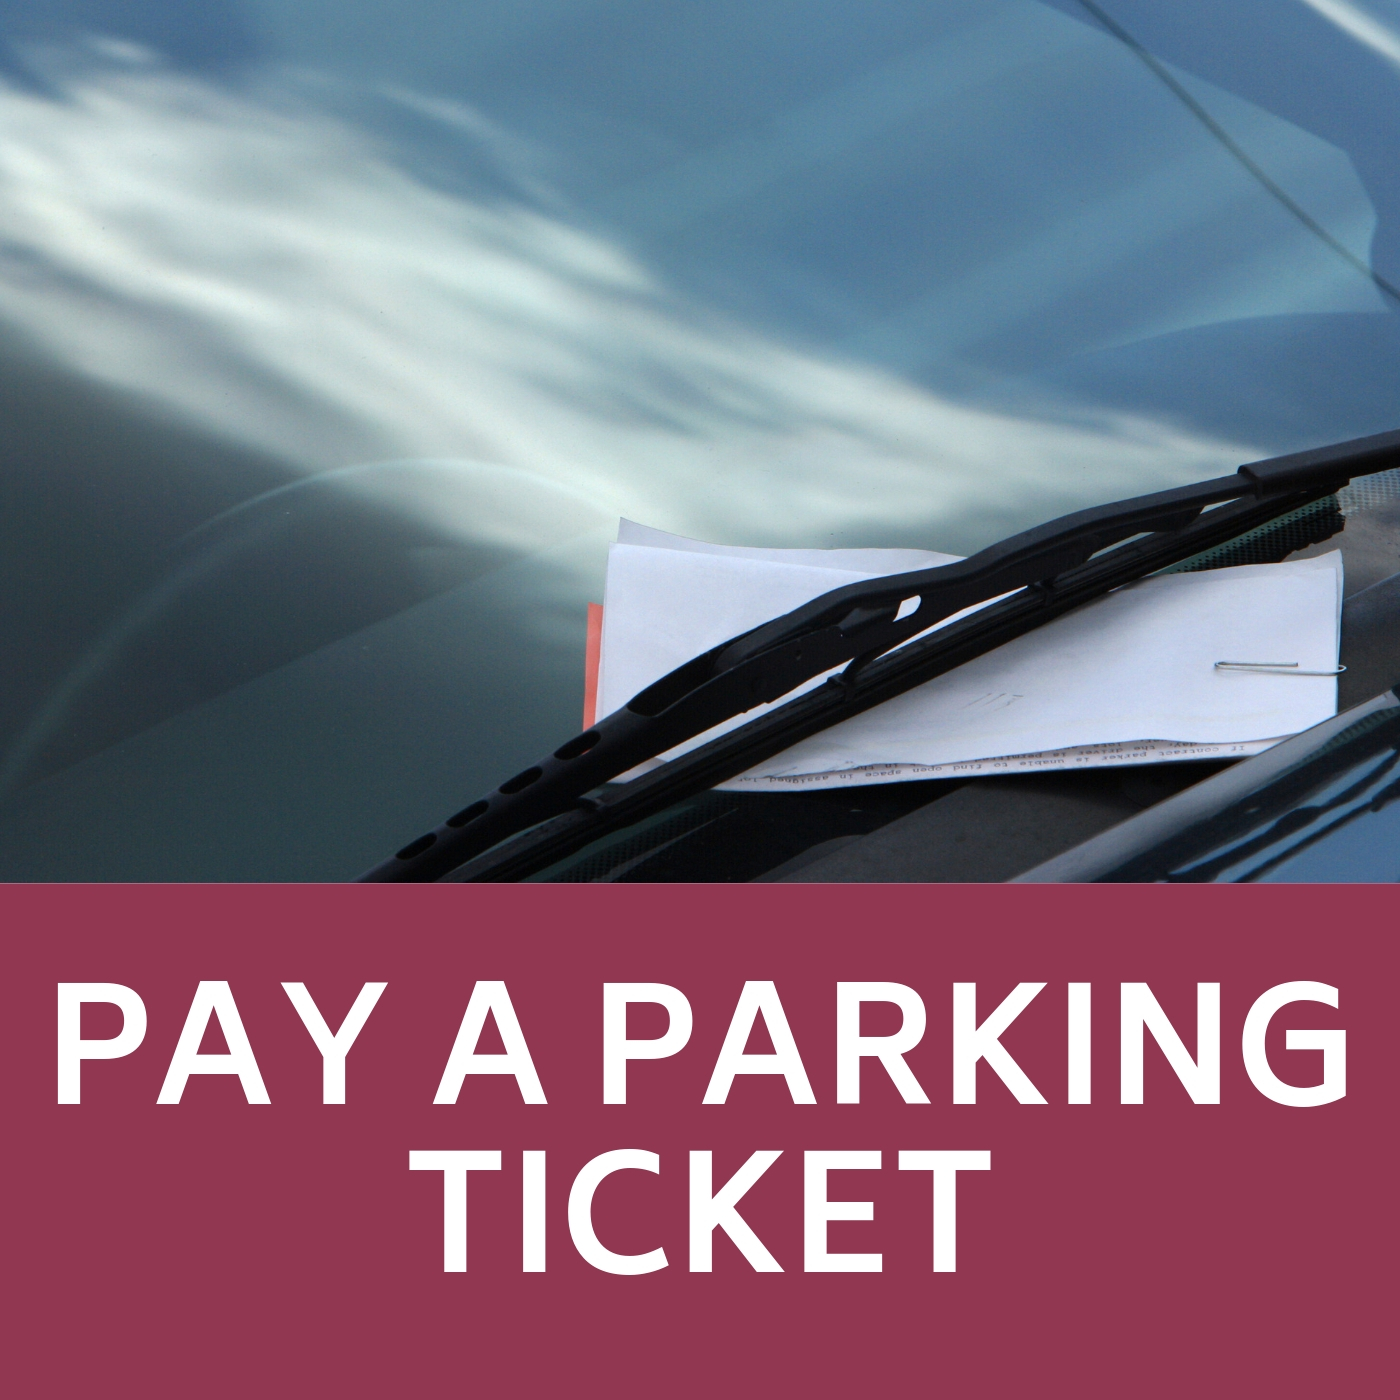 Image of a parking ticket that links tohttps://www.abingtonpd.org/resources/parking-tickets/